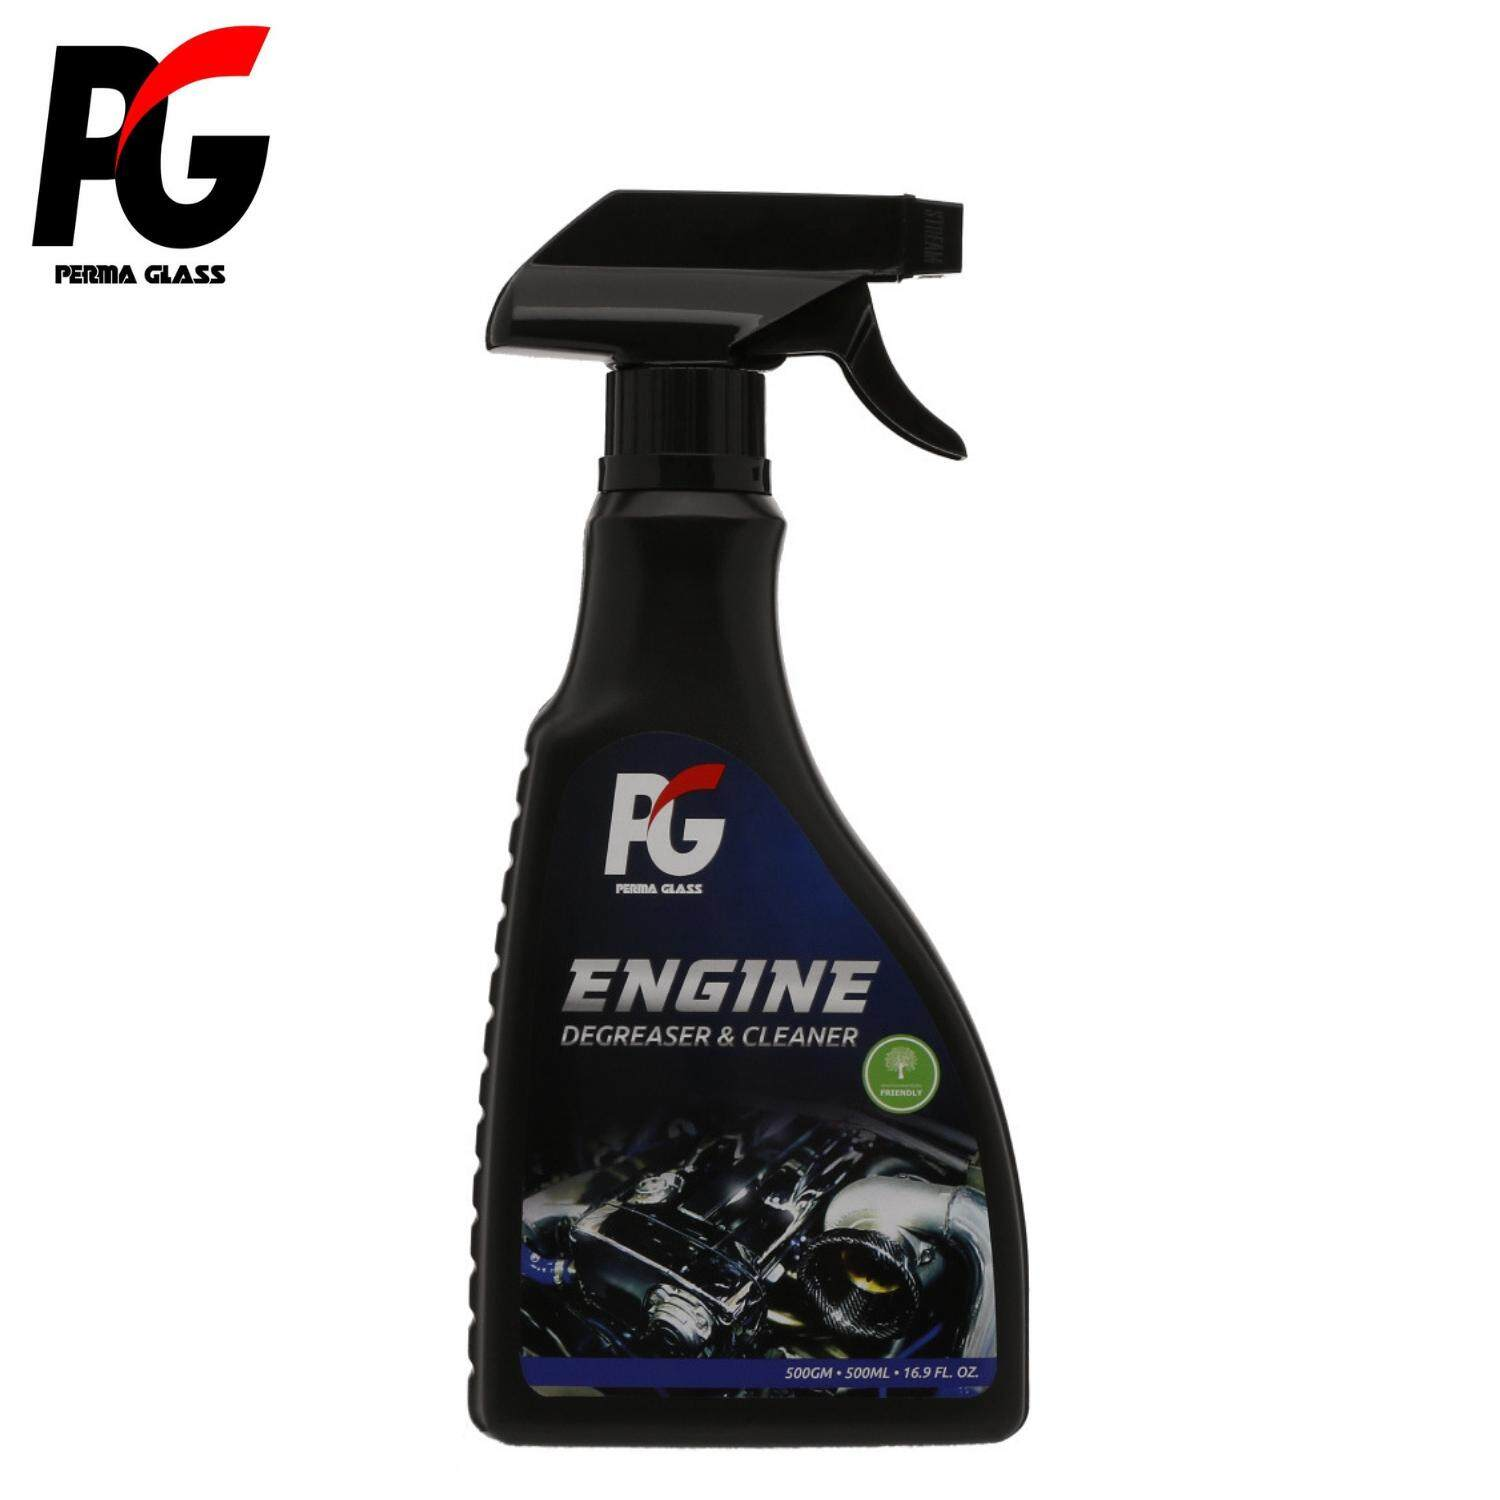 PG Perma Glass Engine Degreaser & Cleaner (Water Base)(500ml)